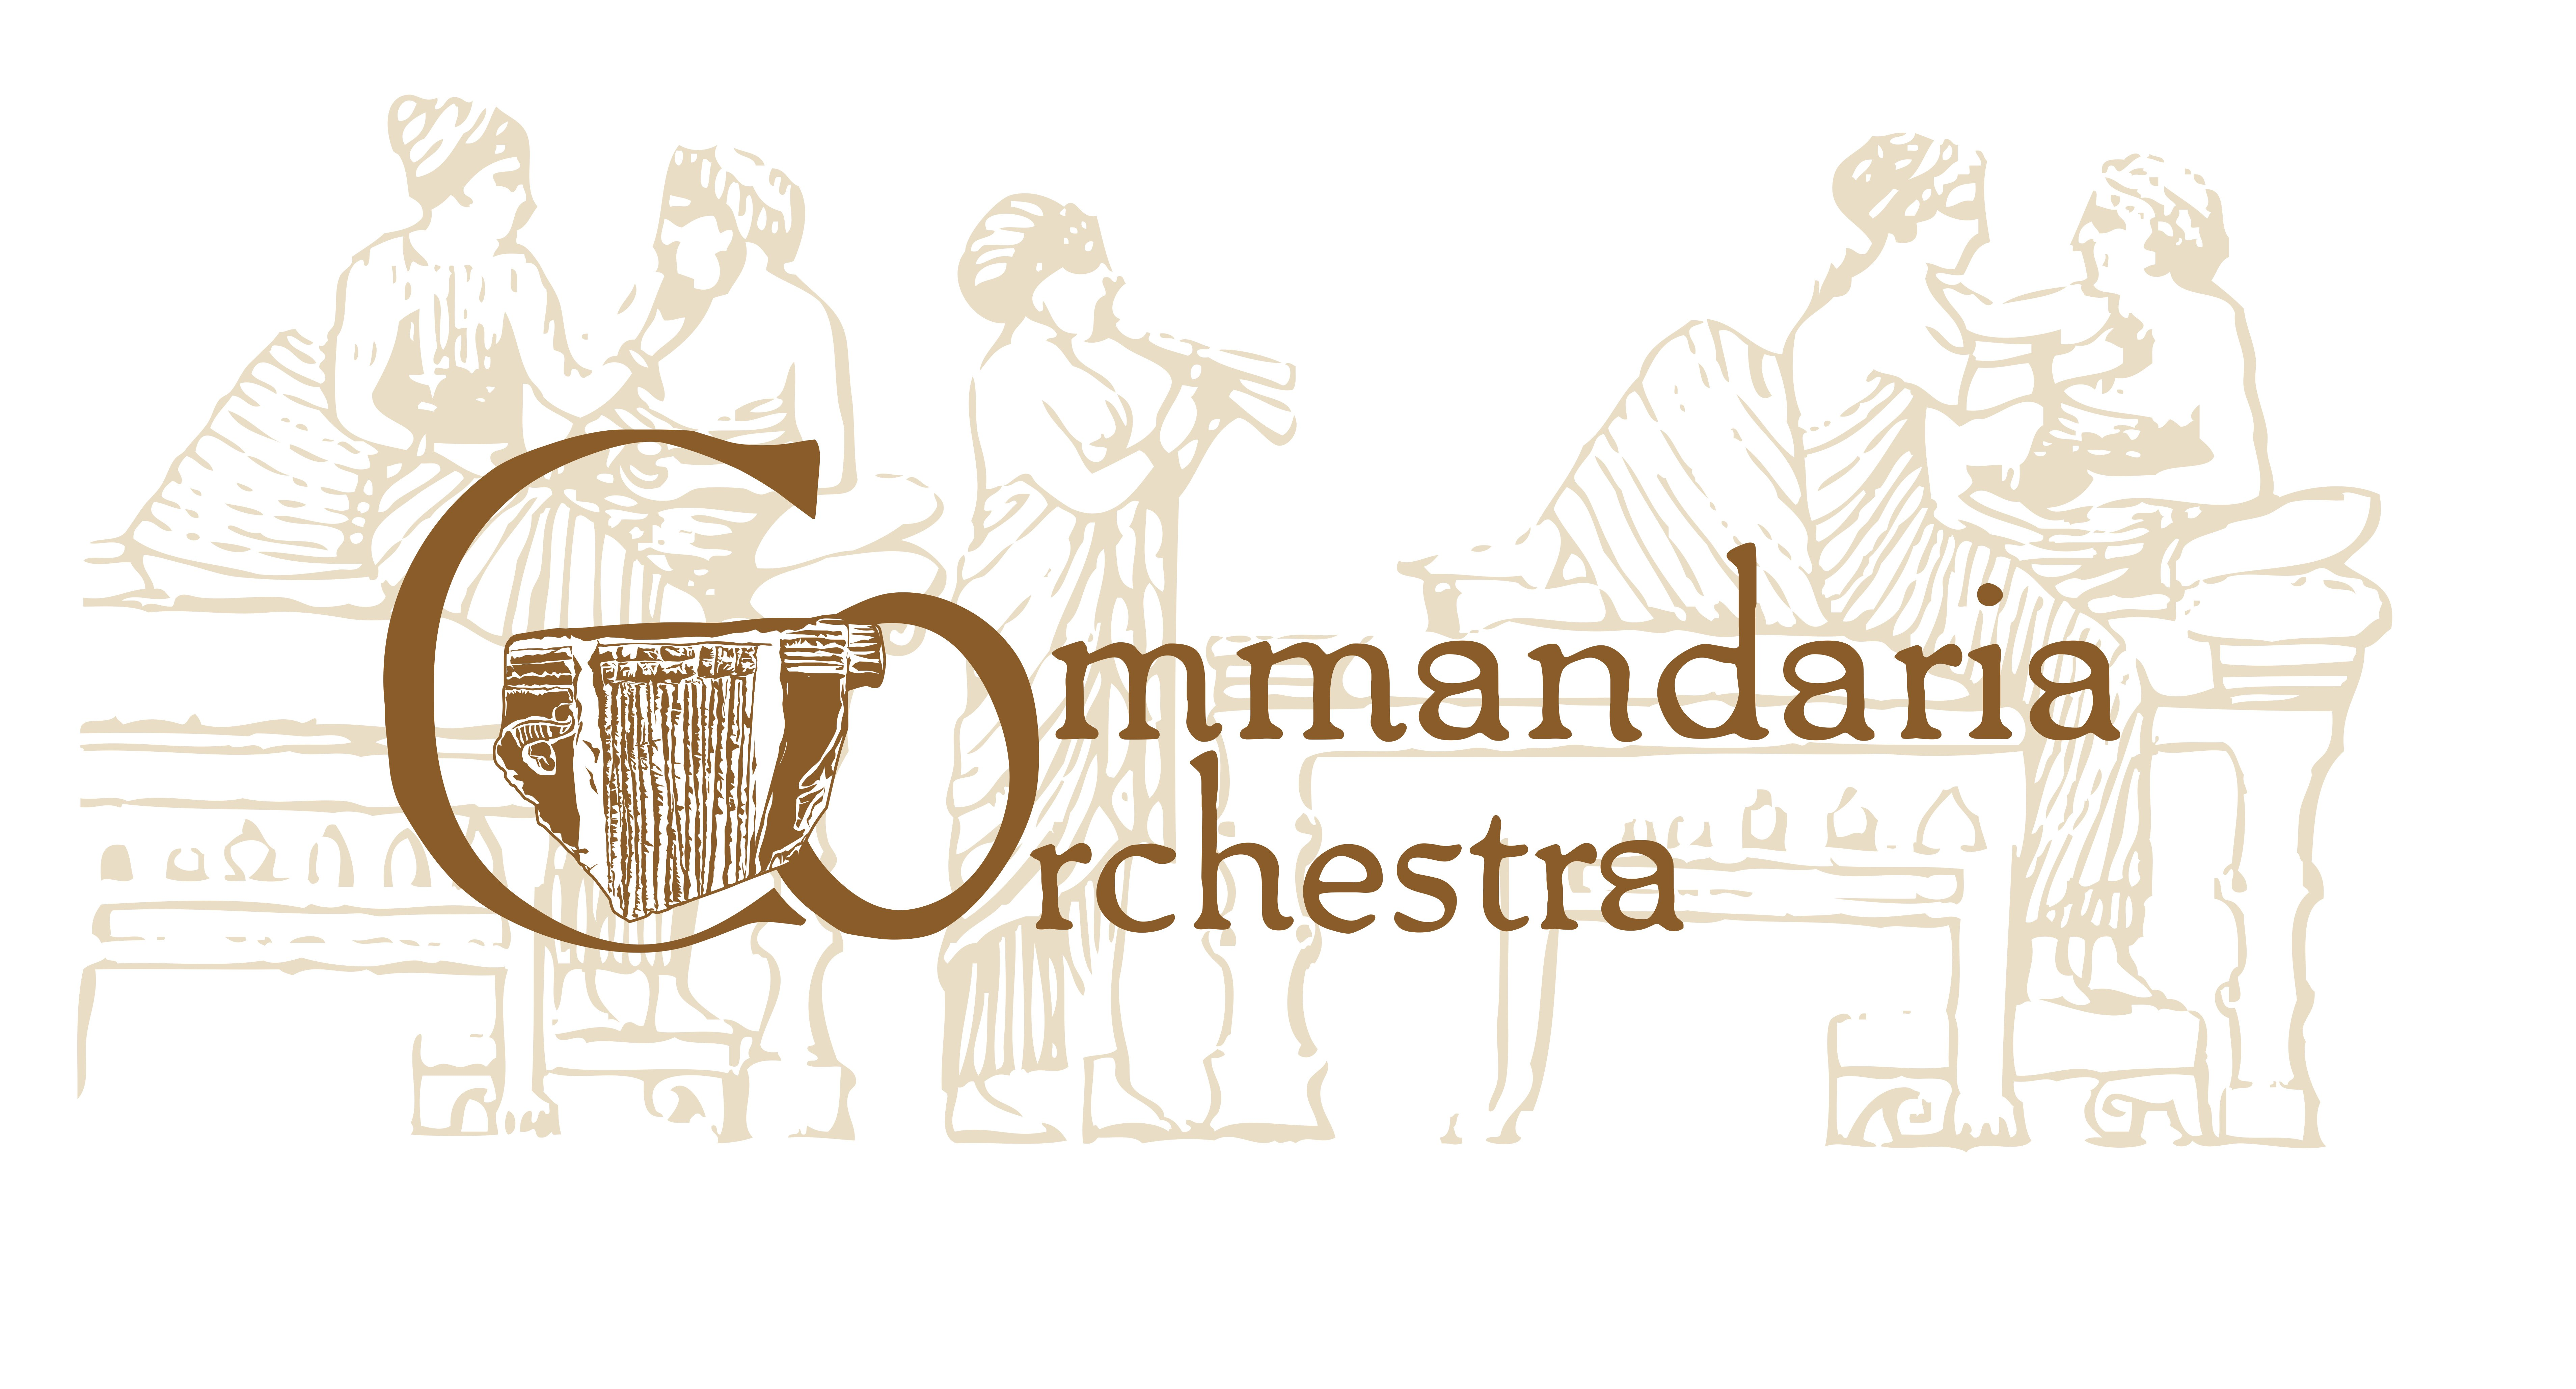 COMMANDARIA ORCHESTRA copy 1.5 mb copy.jpg